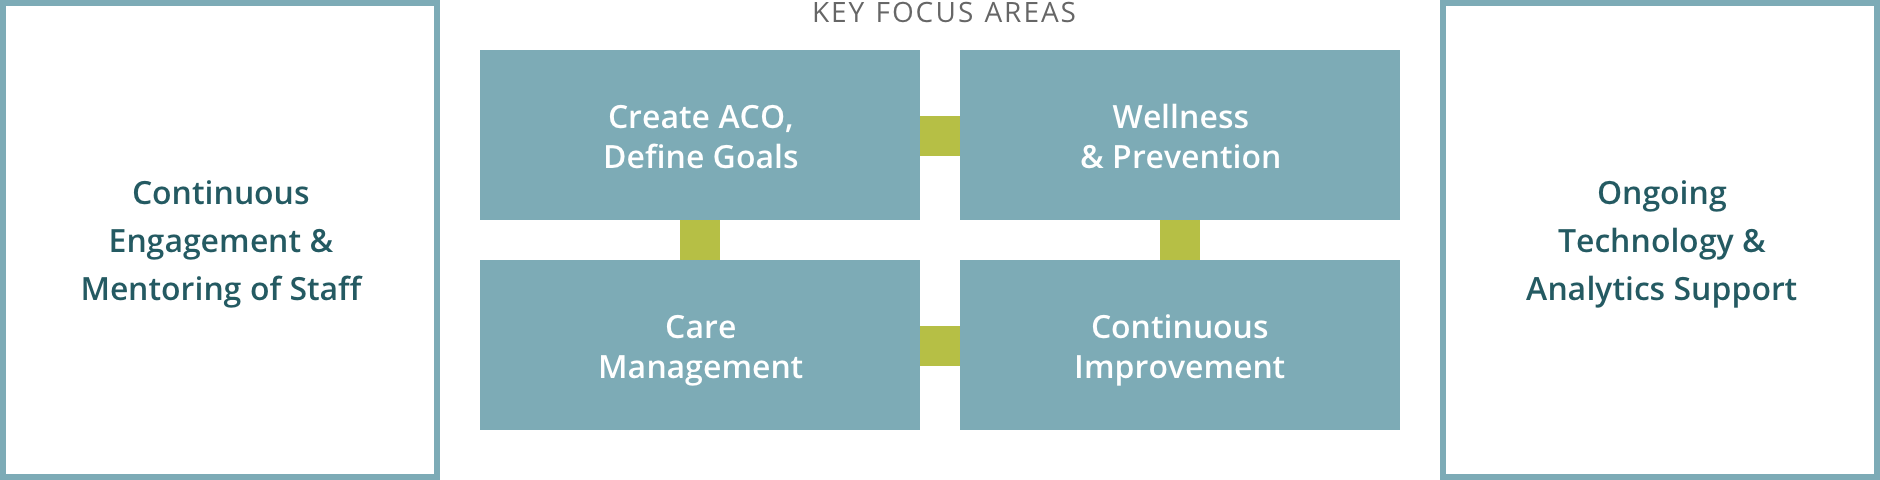 Caravan ACO Model and Key Focus Areas